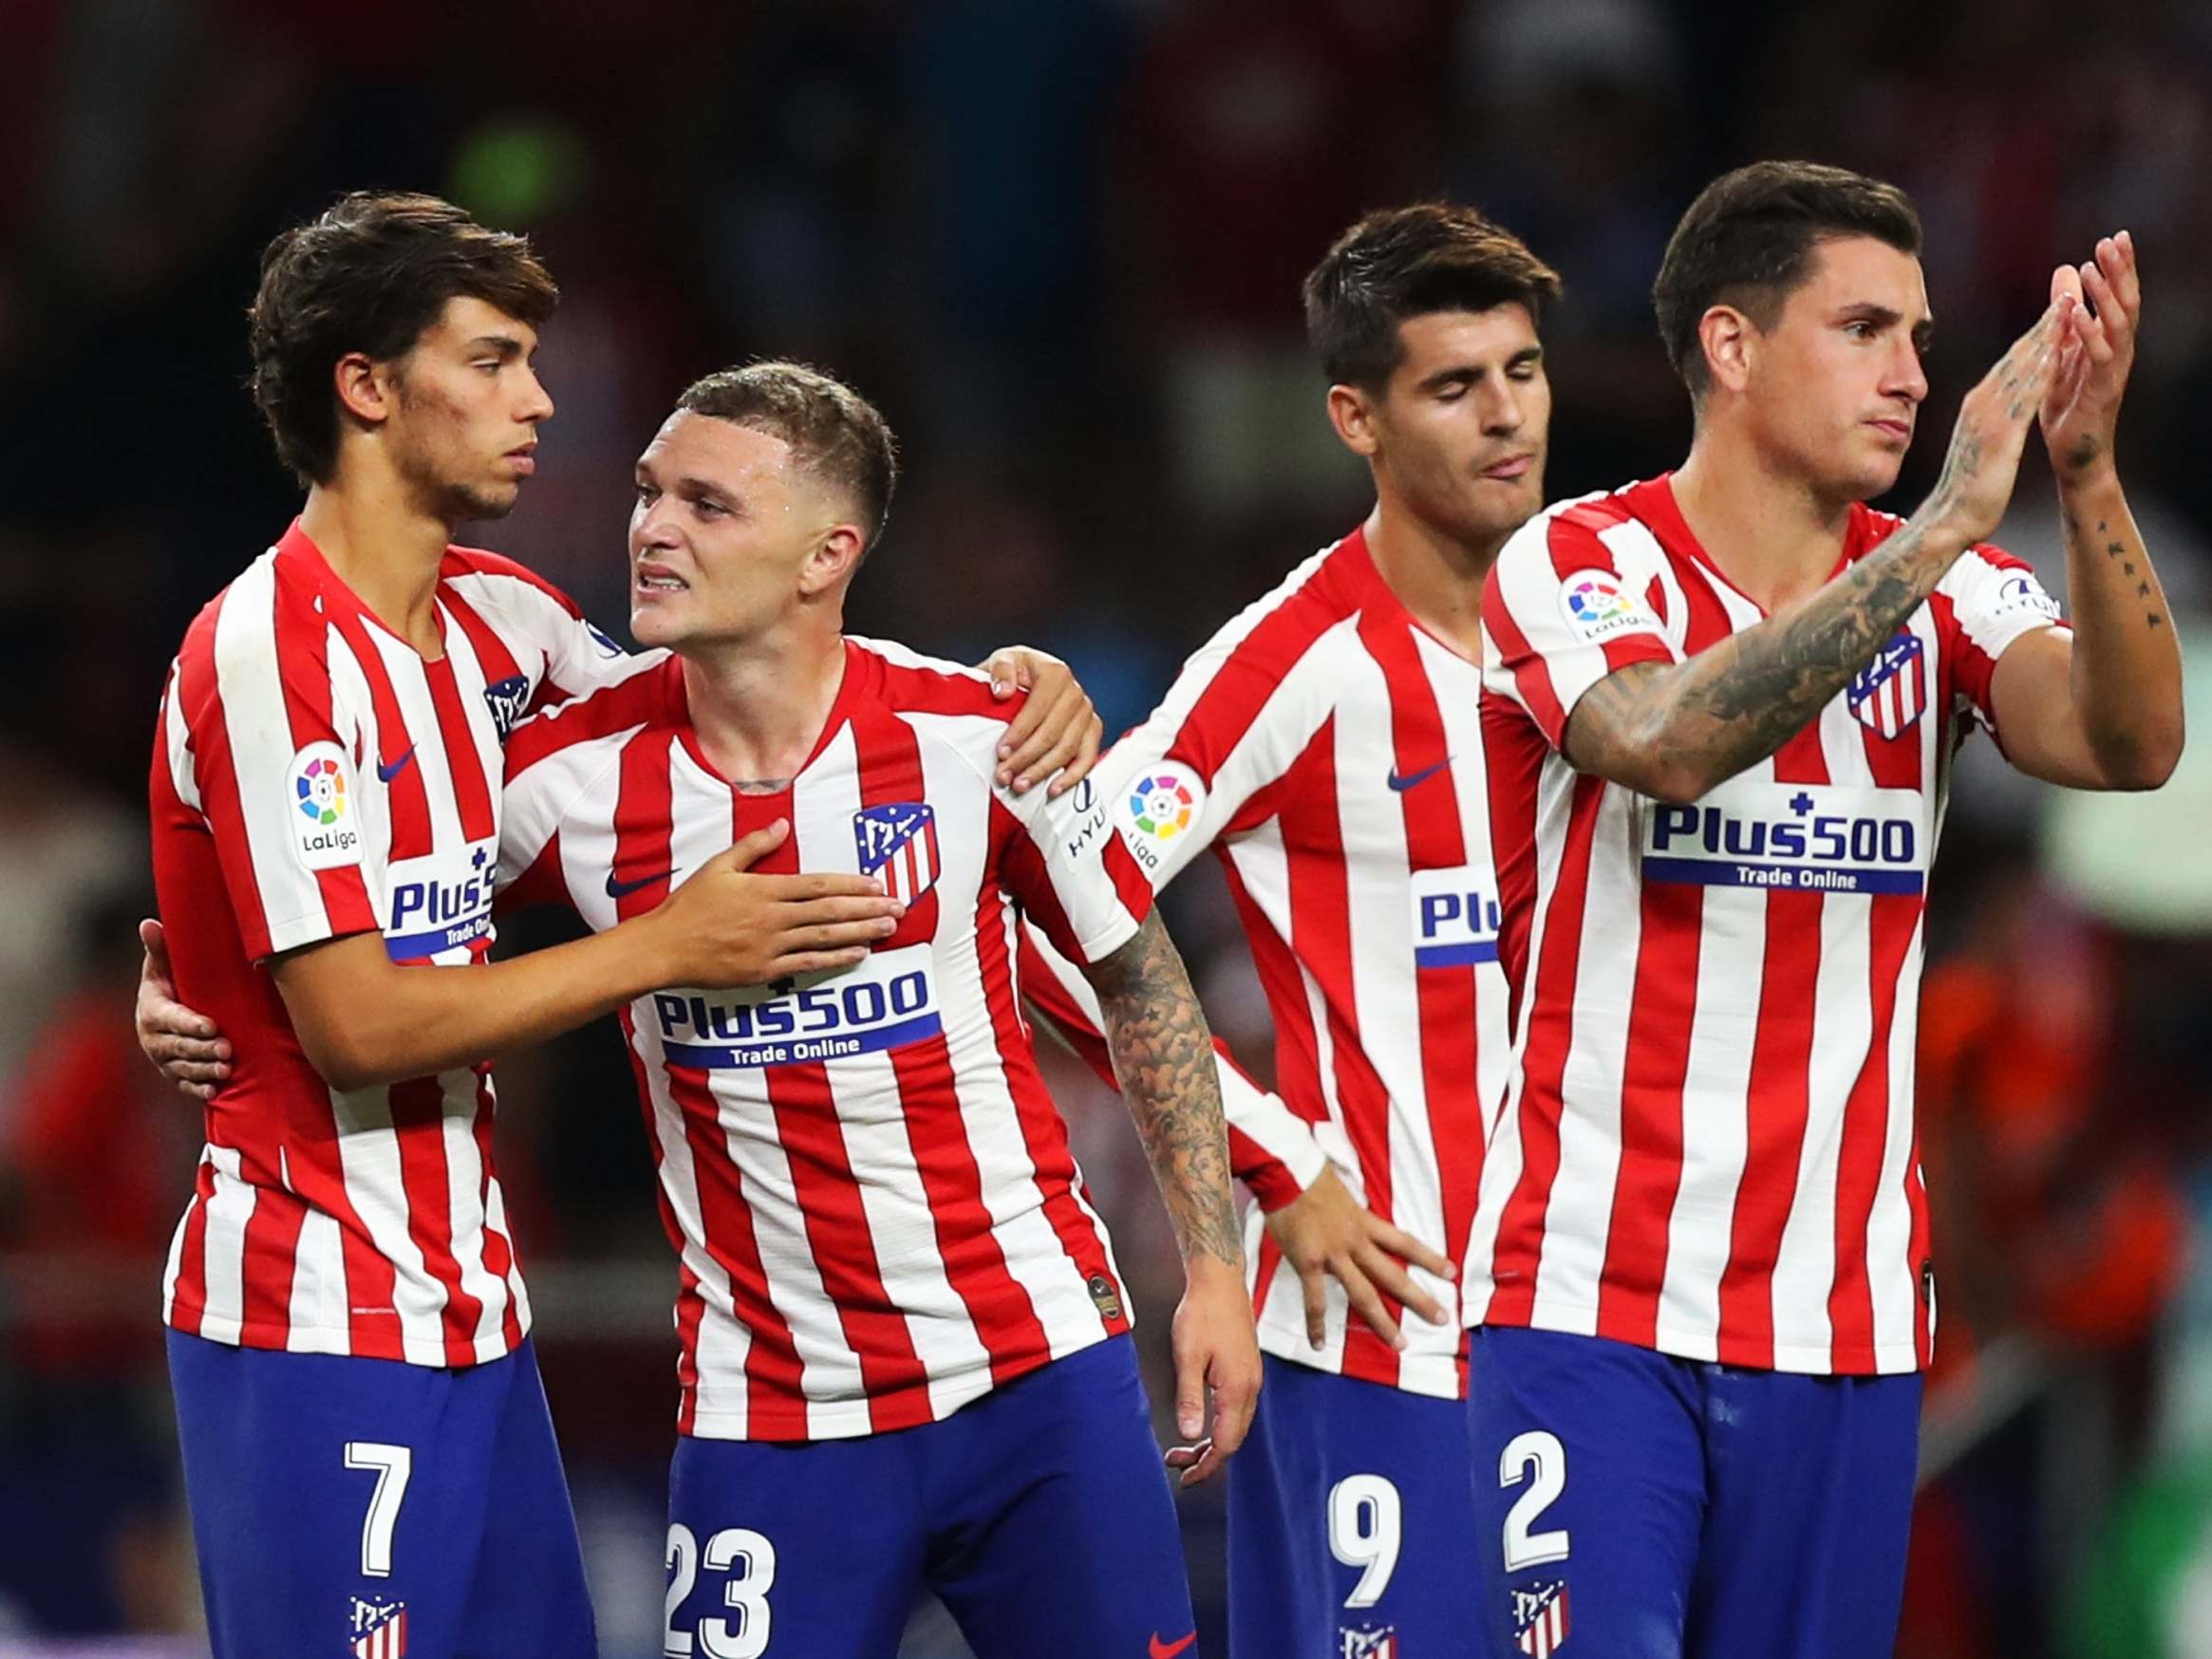 Leganes vs Atletico Madrid LIVE: Stream, prediction, latest score and goal updates from La Liga